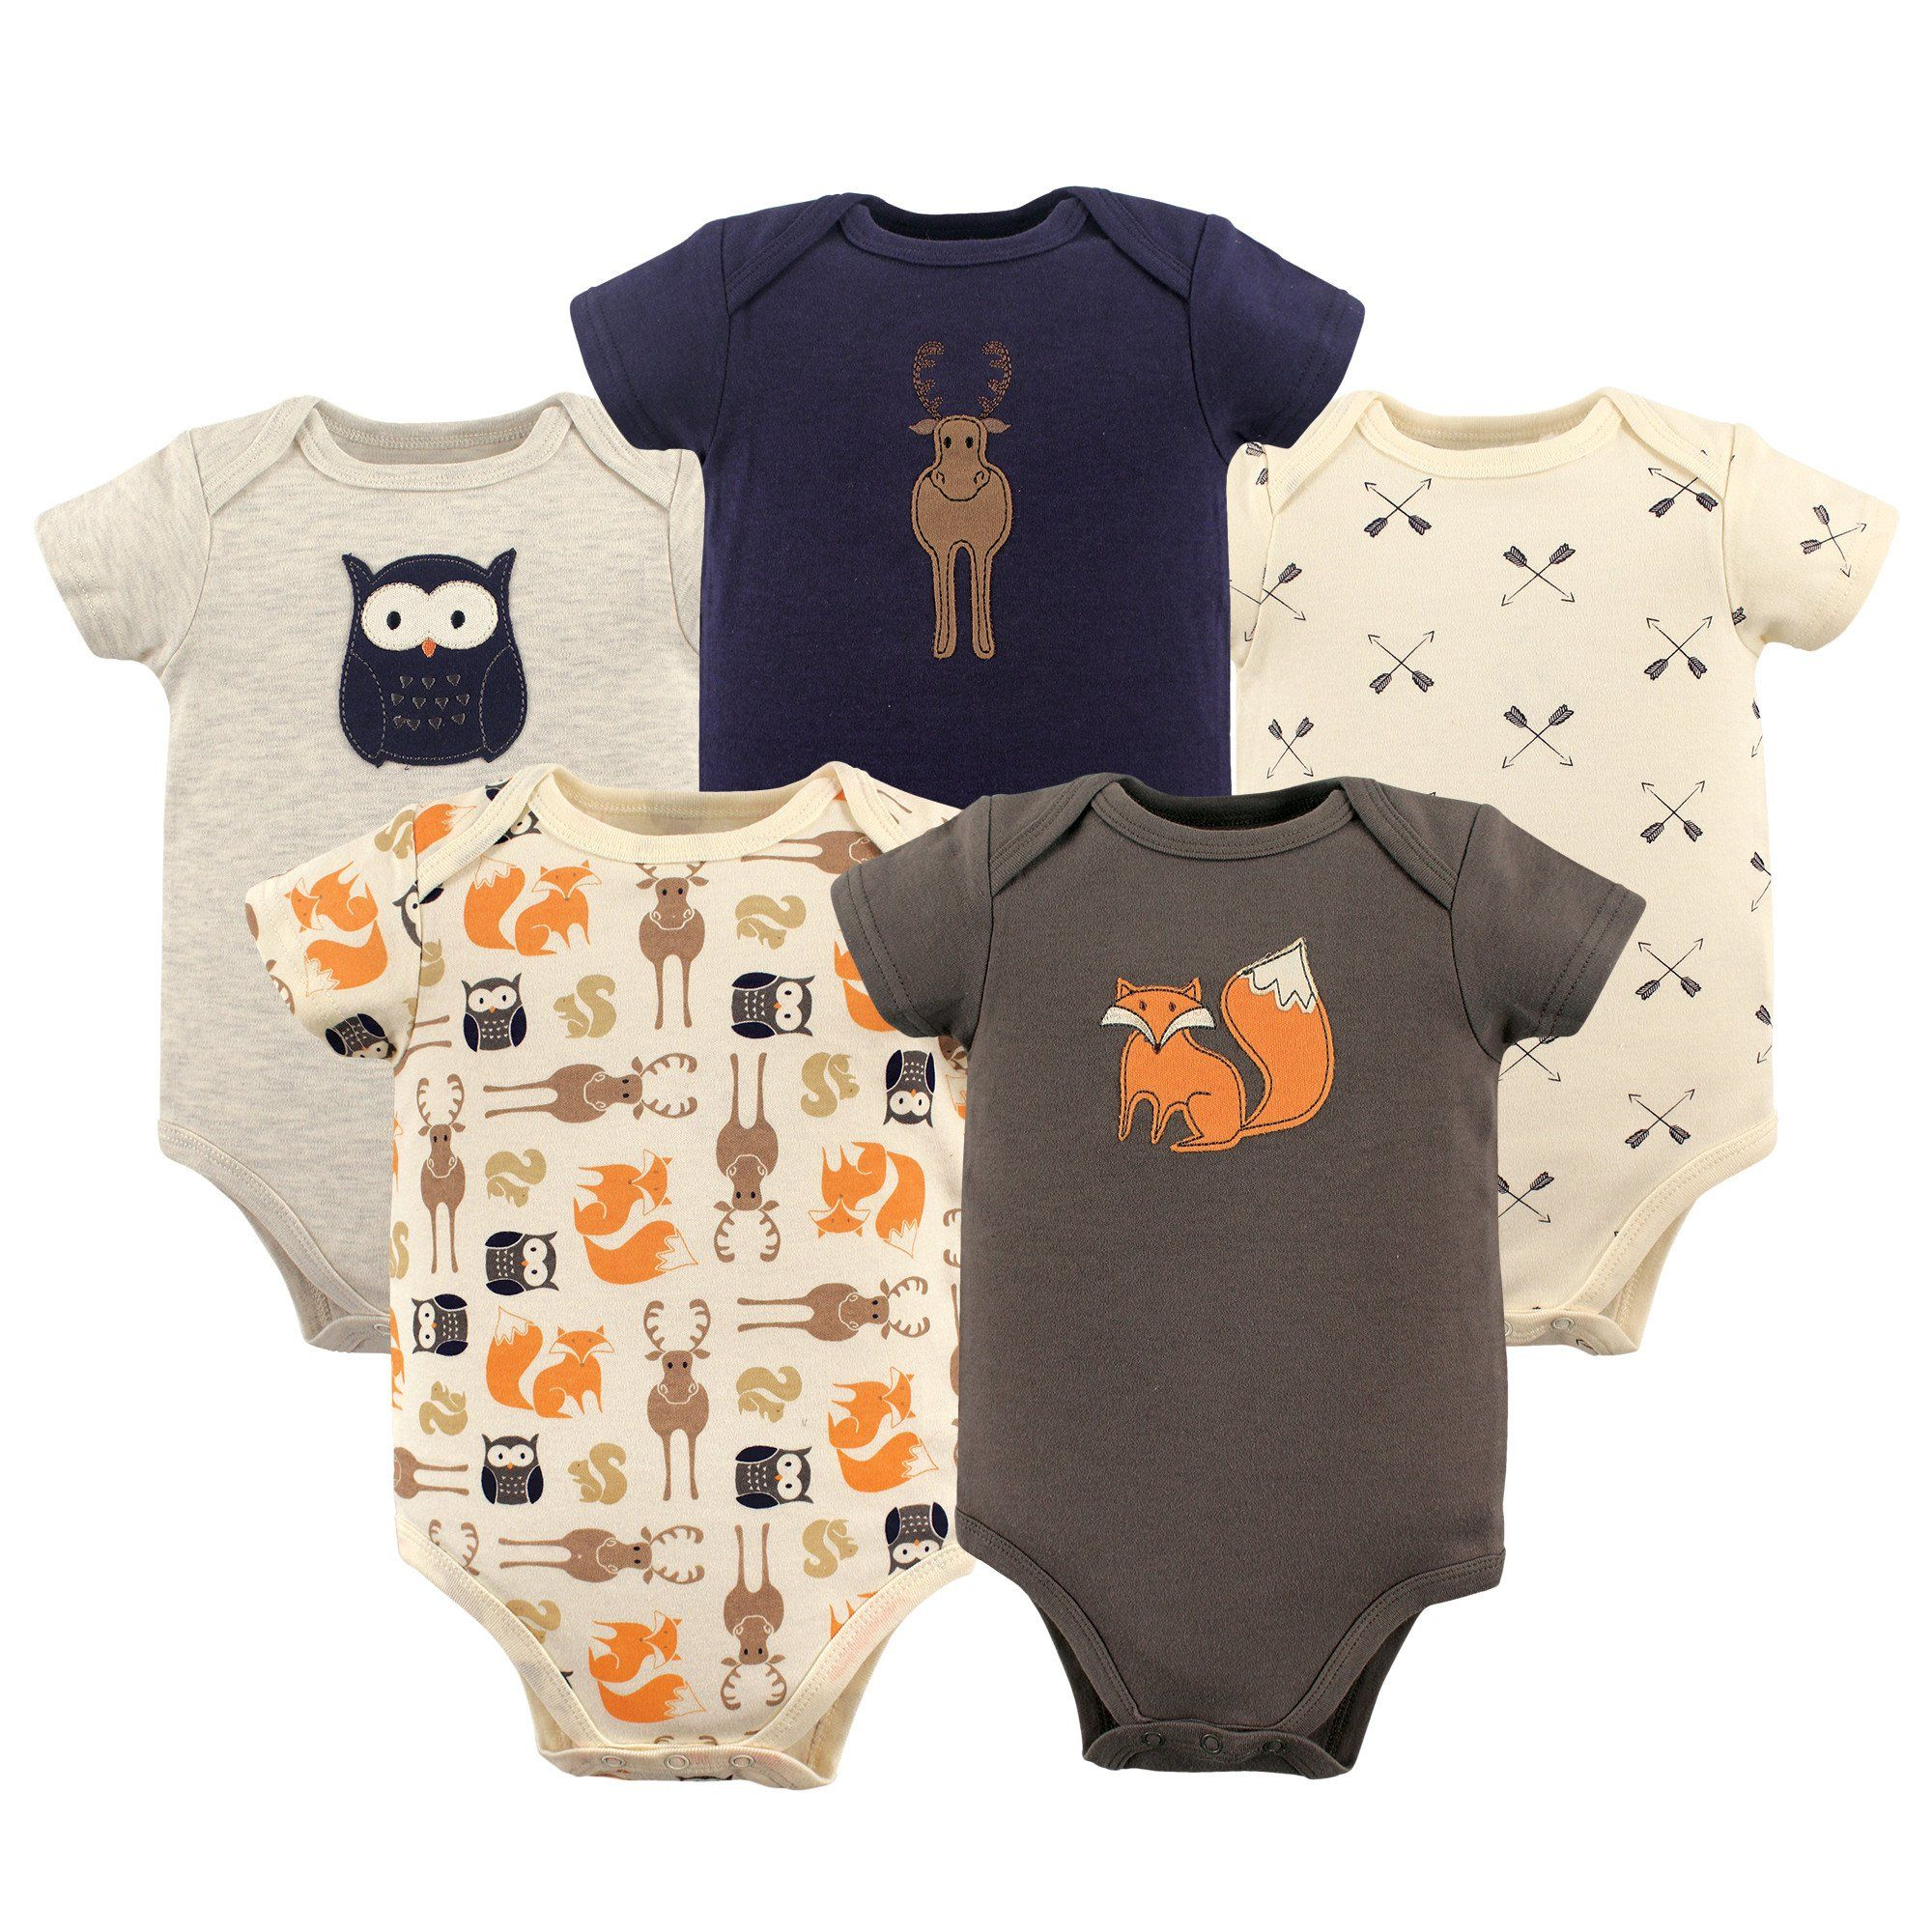 Hudson Baby Baby Bodysuits 5 Pack Woodland Creatures 3 6 Months